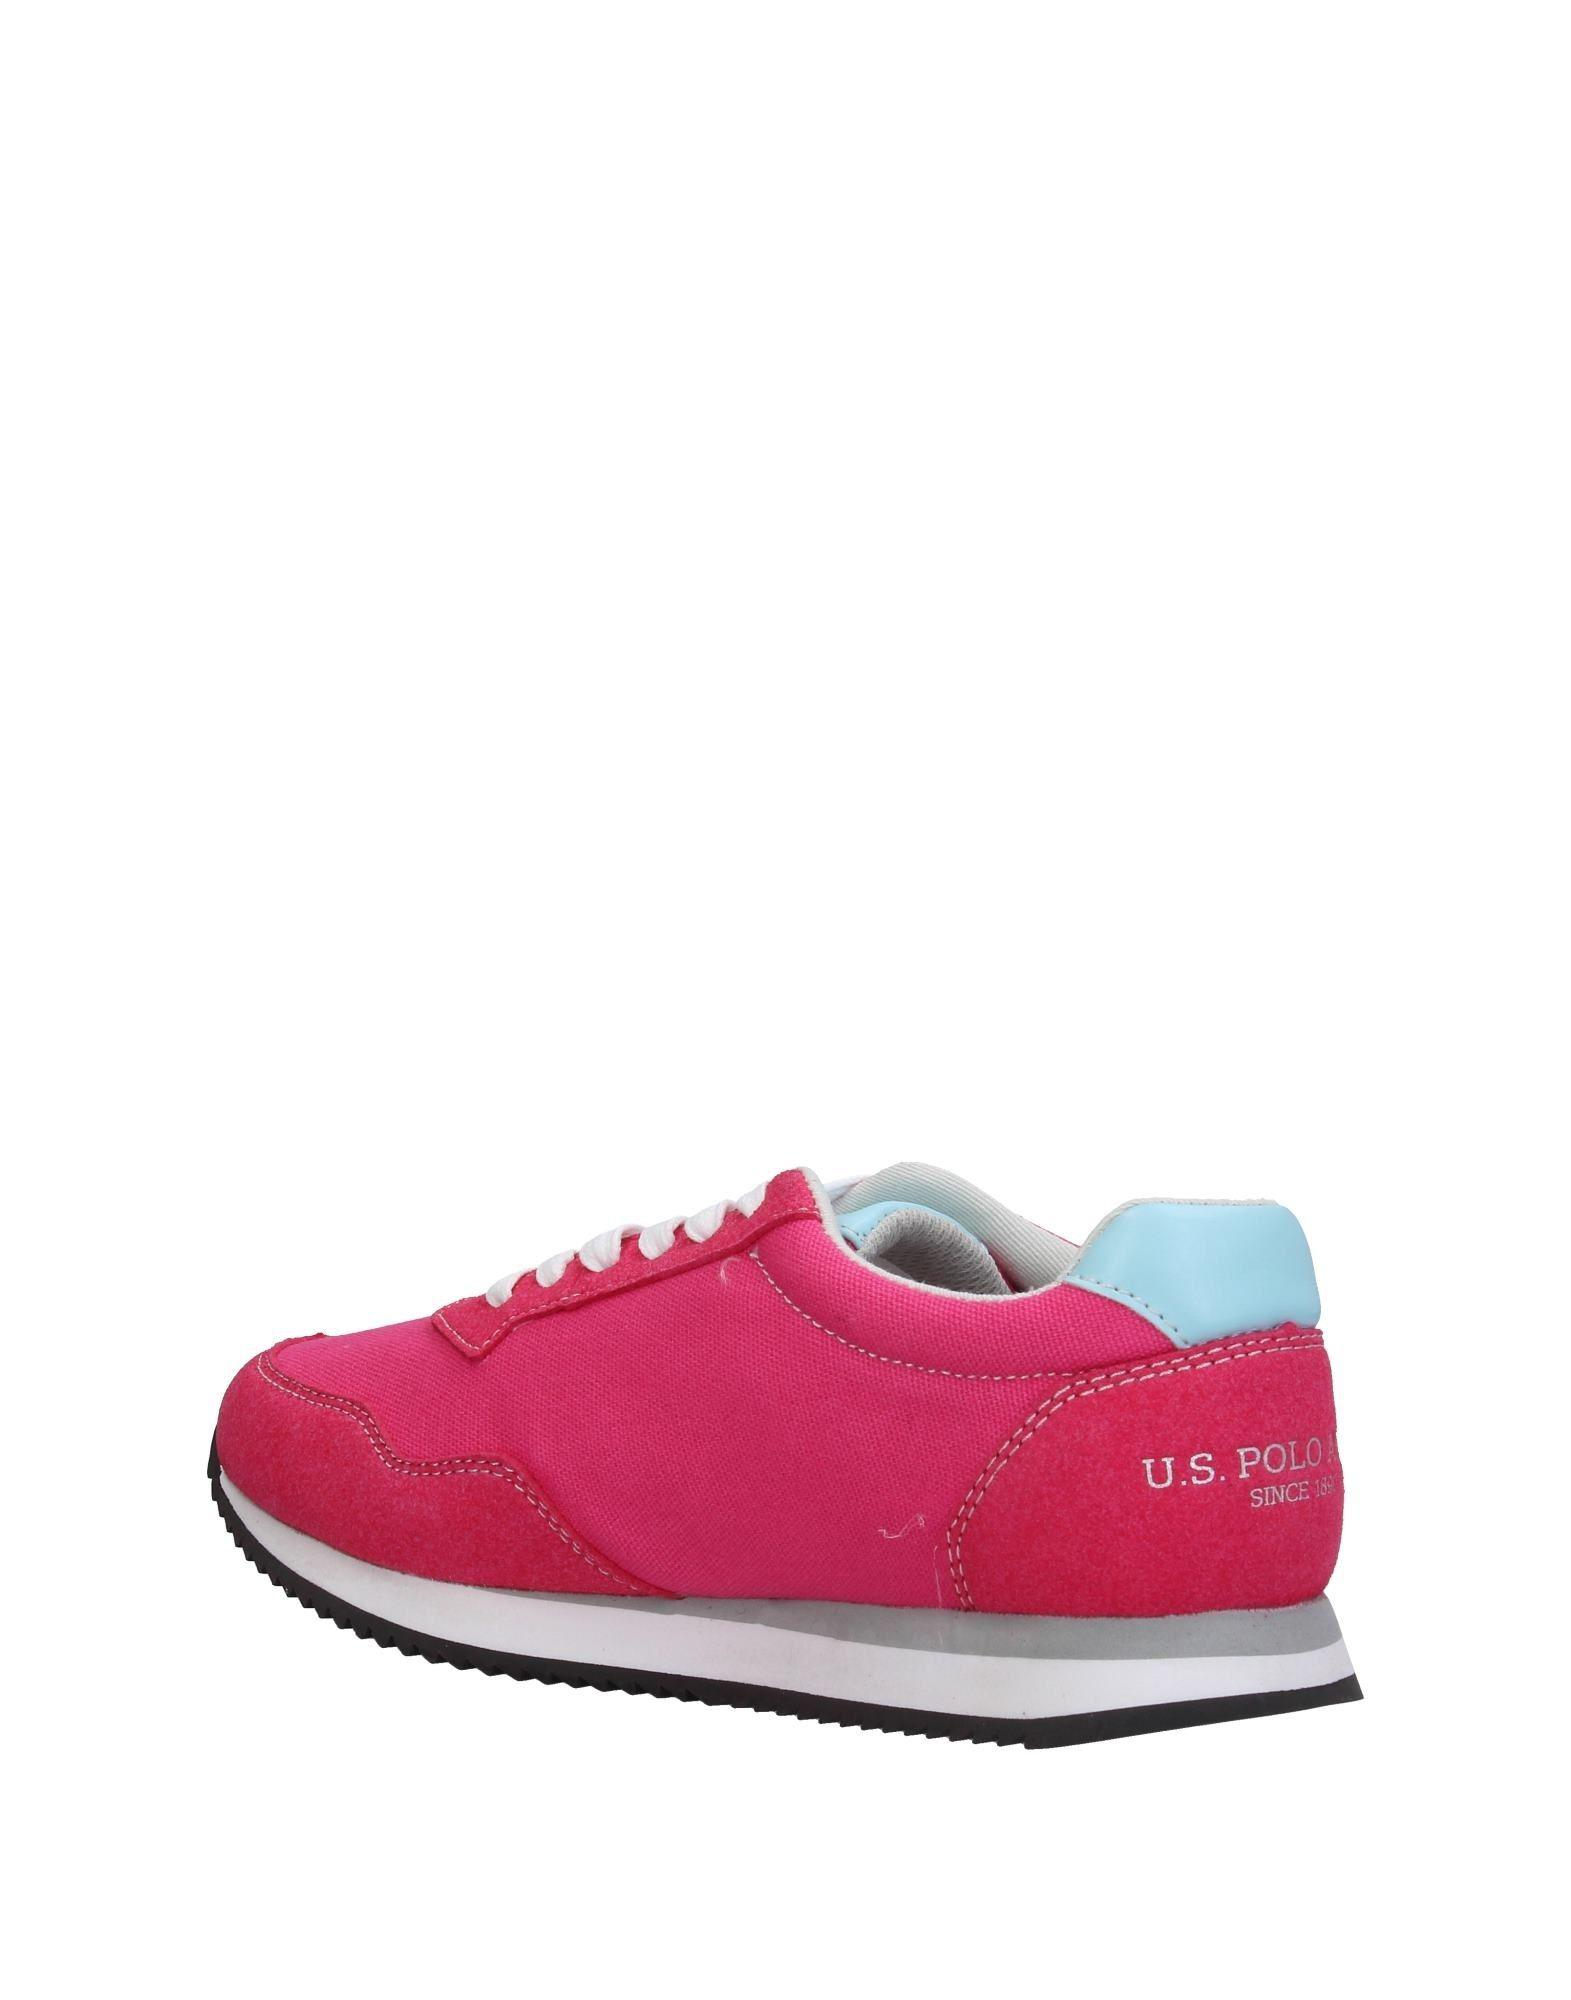 U.S. POLO ASSN. Low-tops & Sneakers in Fuchsia (Pink)